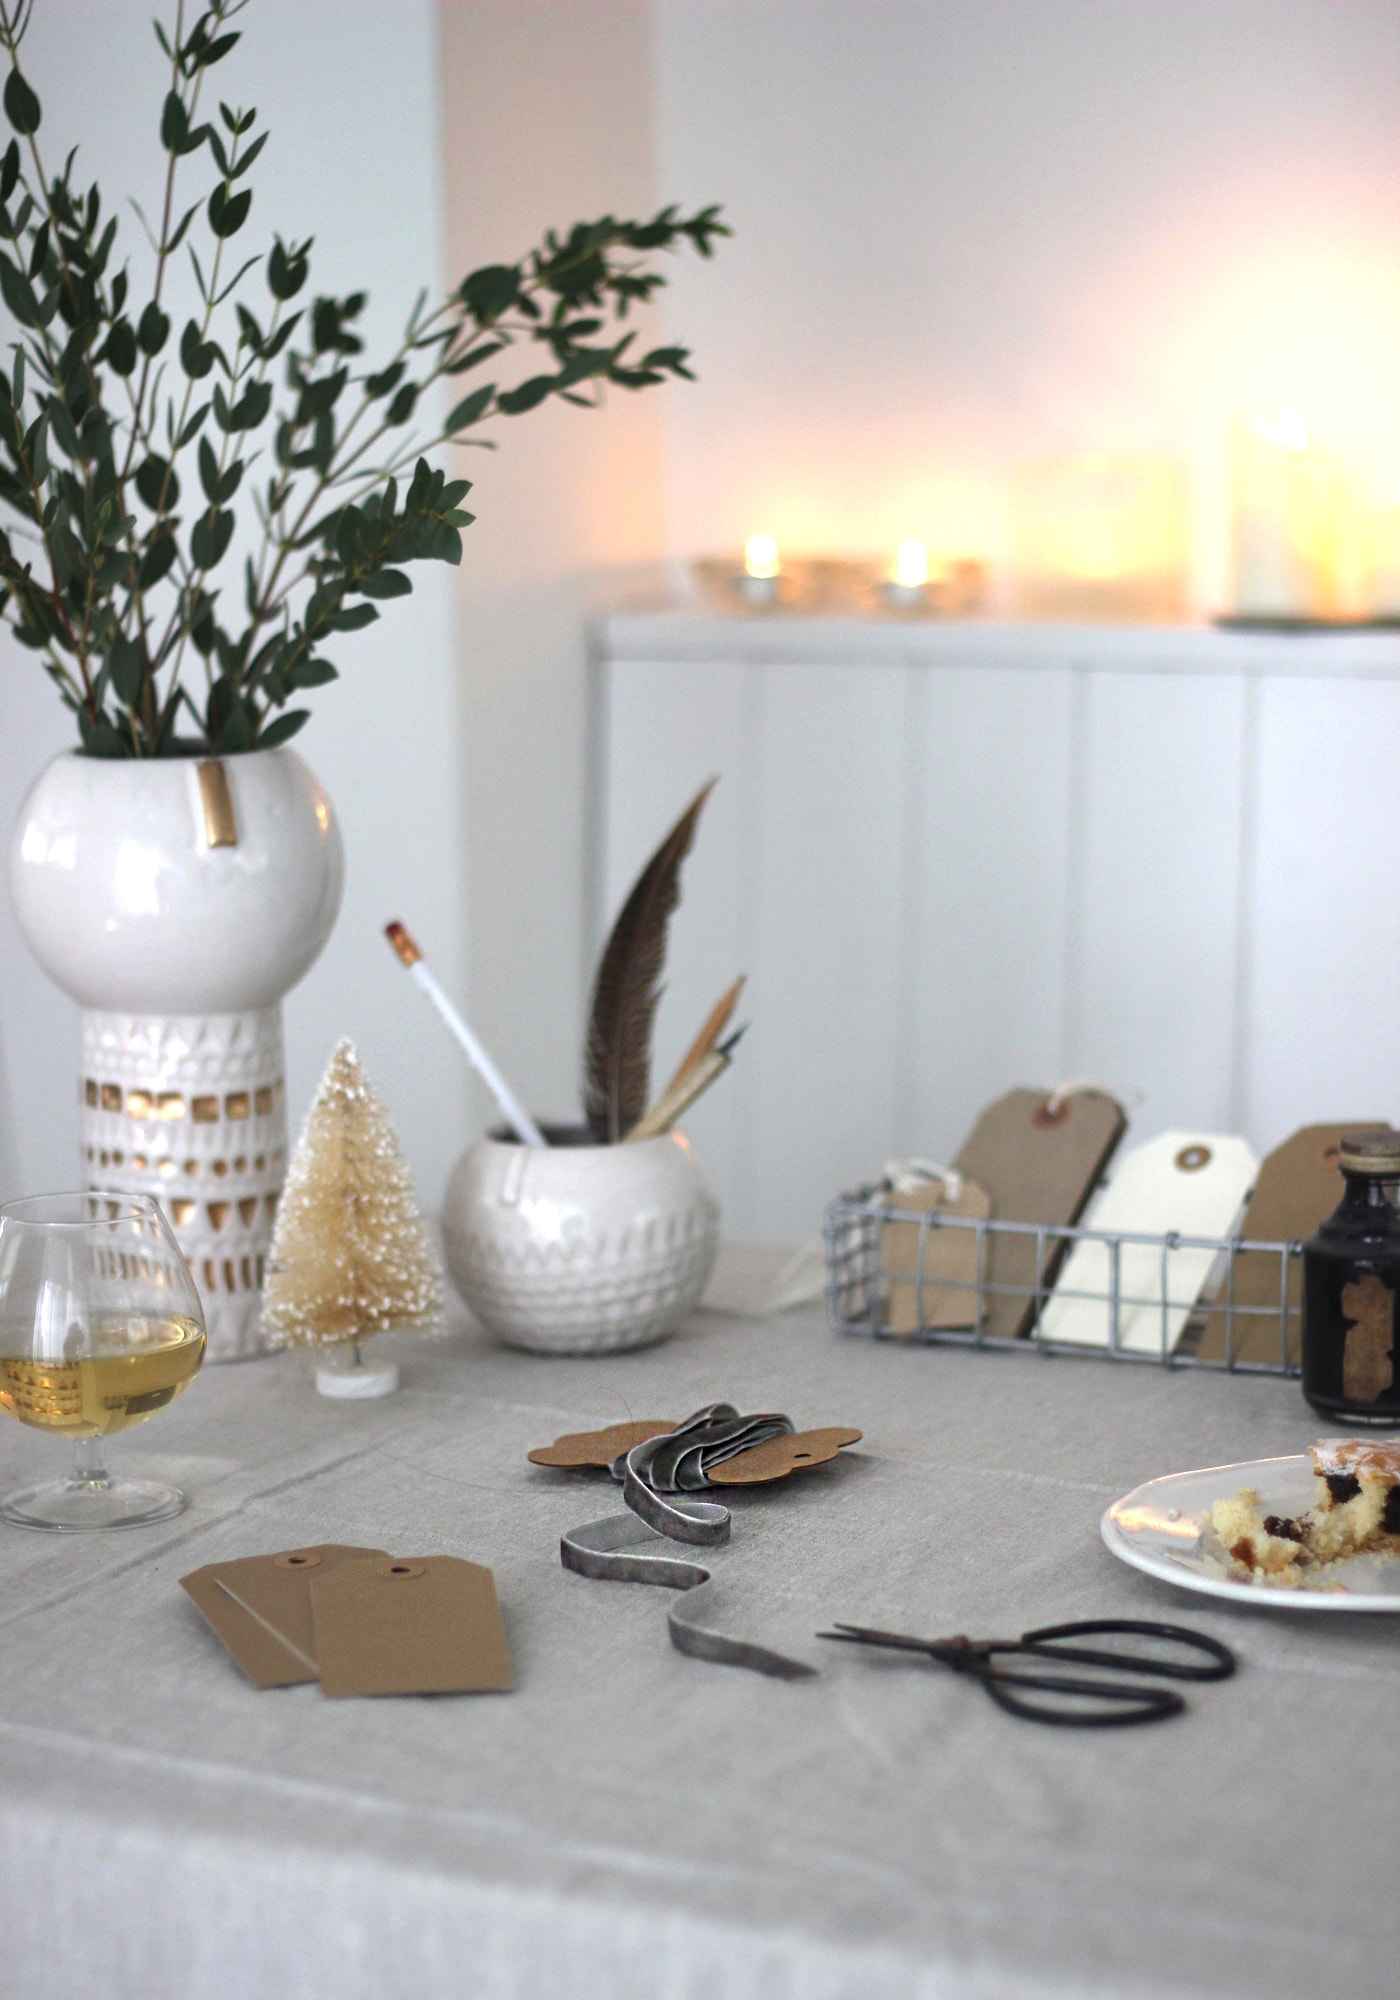 12 styled days of Christmas with West Elm | Festive series | growing spaces